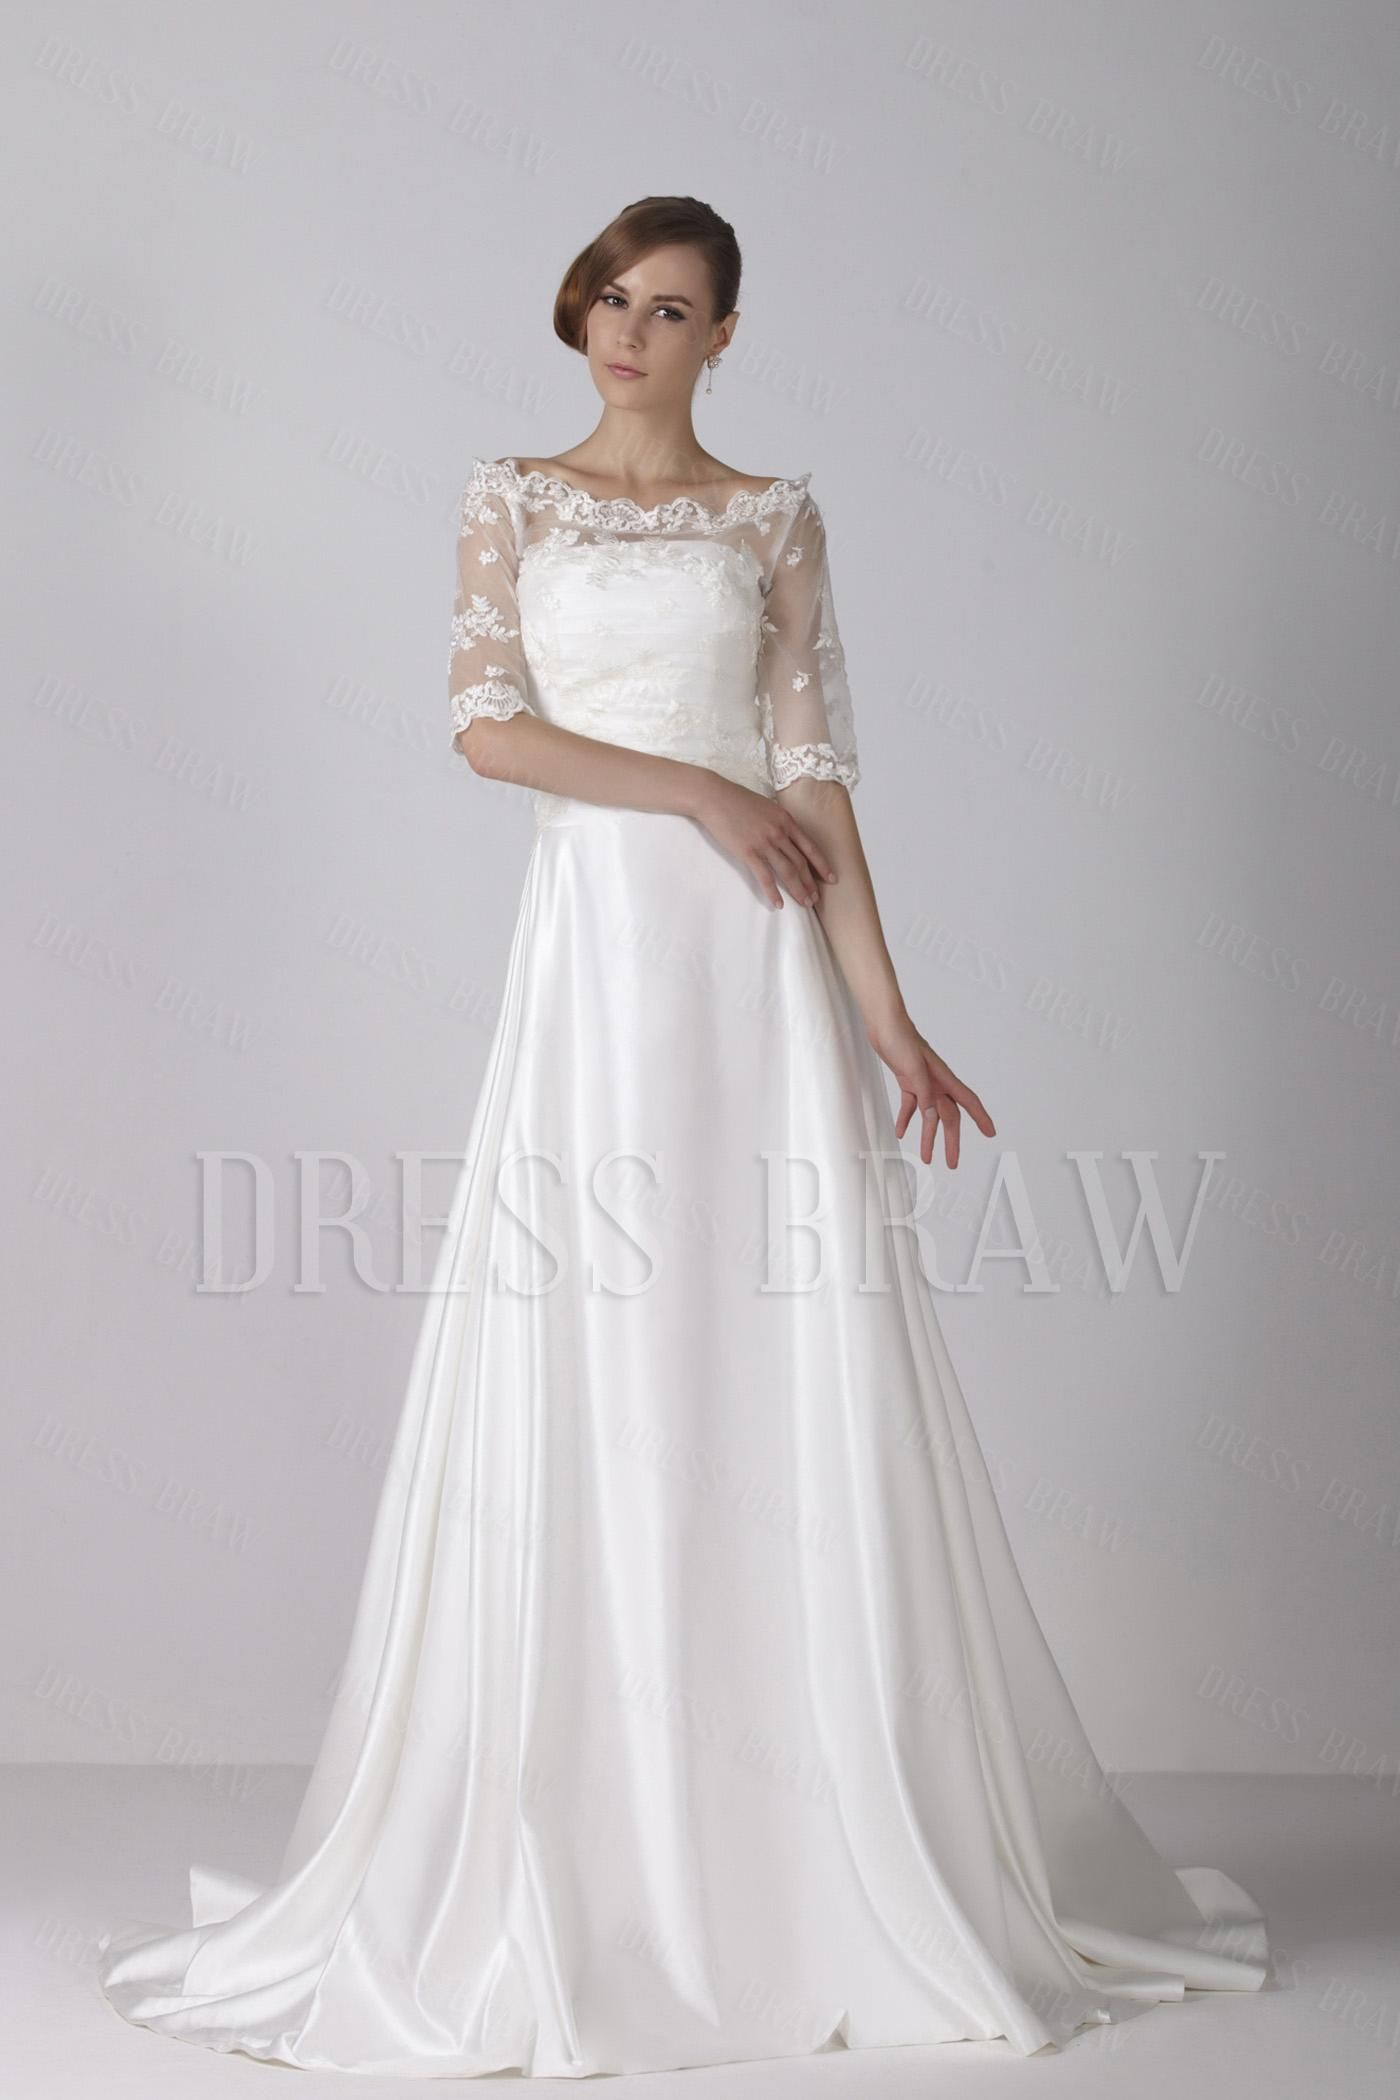 Fashion aline bateau wedding dress with lace jacket chapel train